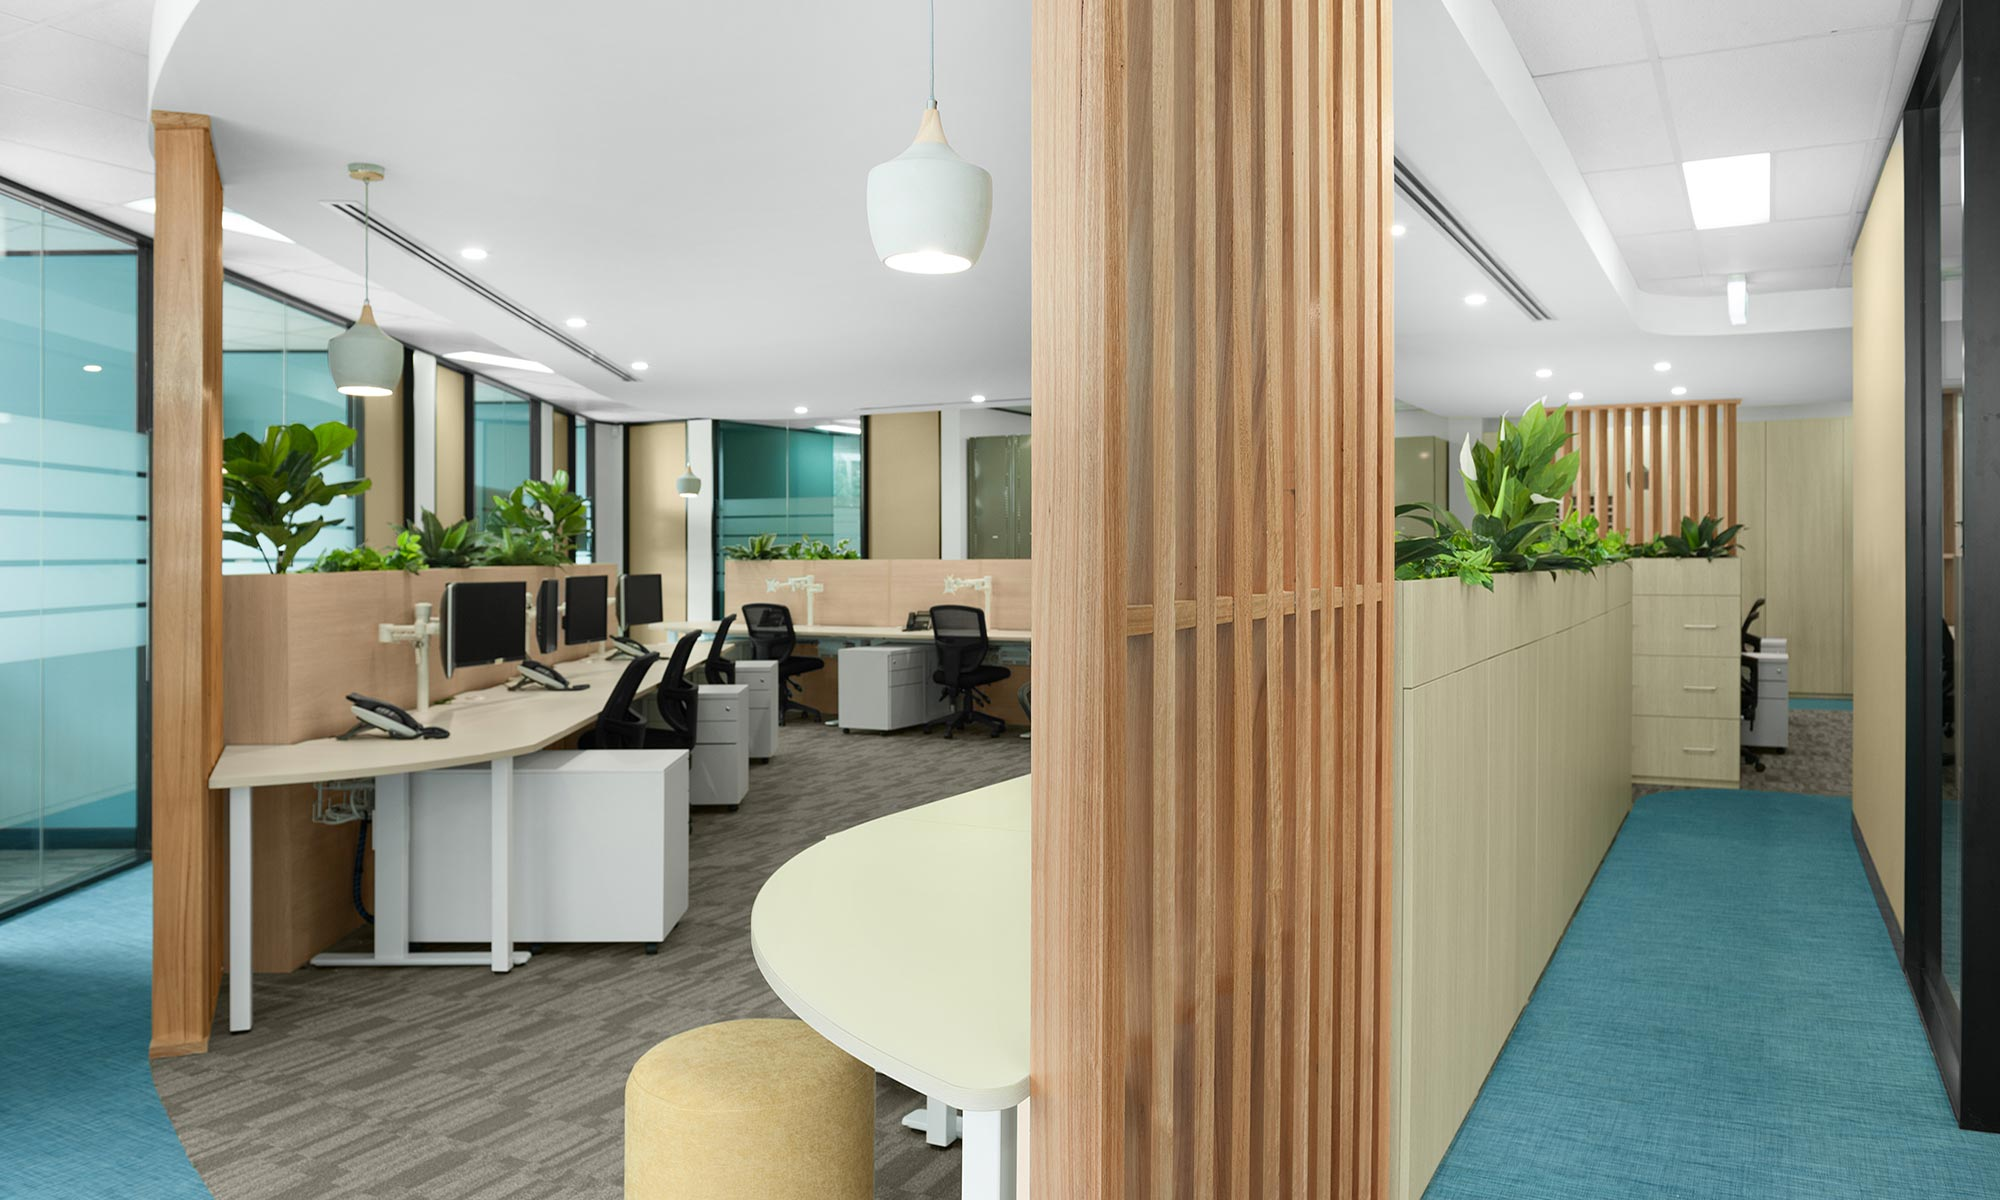 klm accountants office design fitout newcastle 04